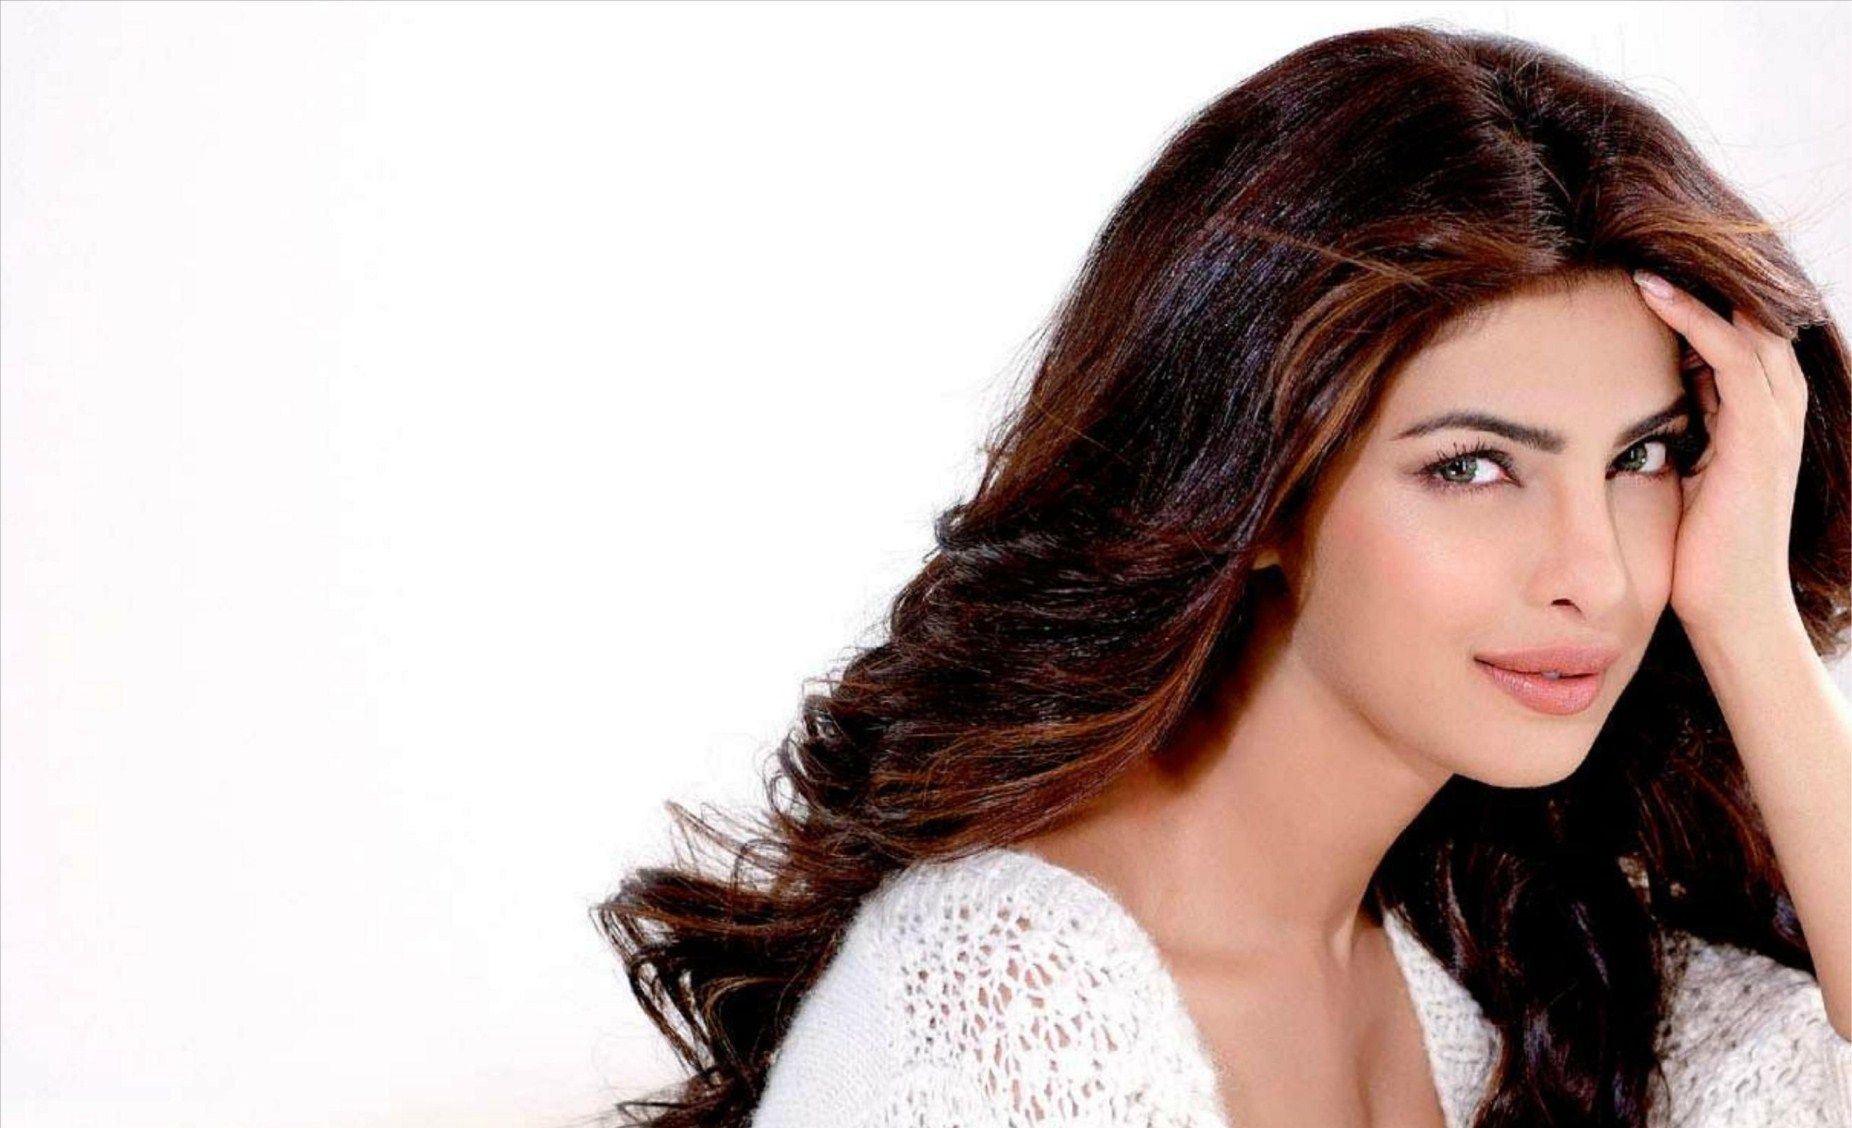 Priyanka Chopra Wallpapers Hd Images